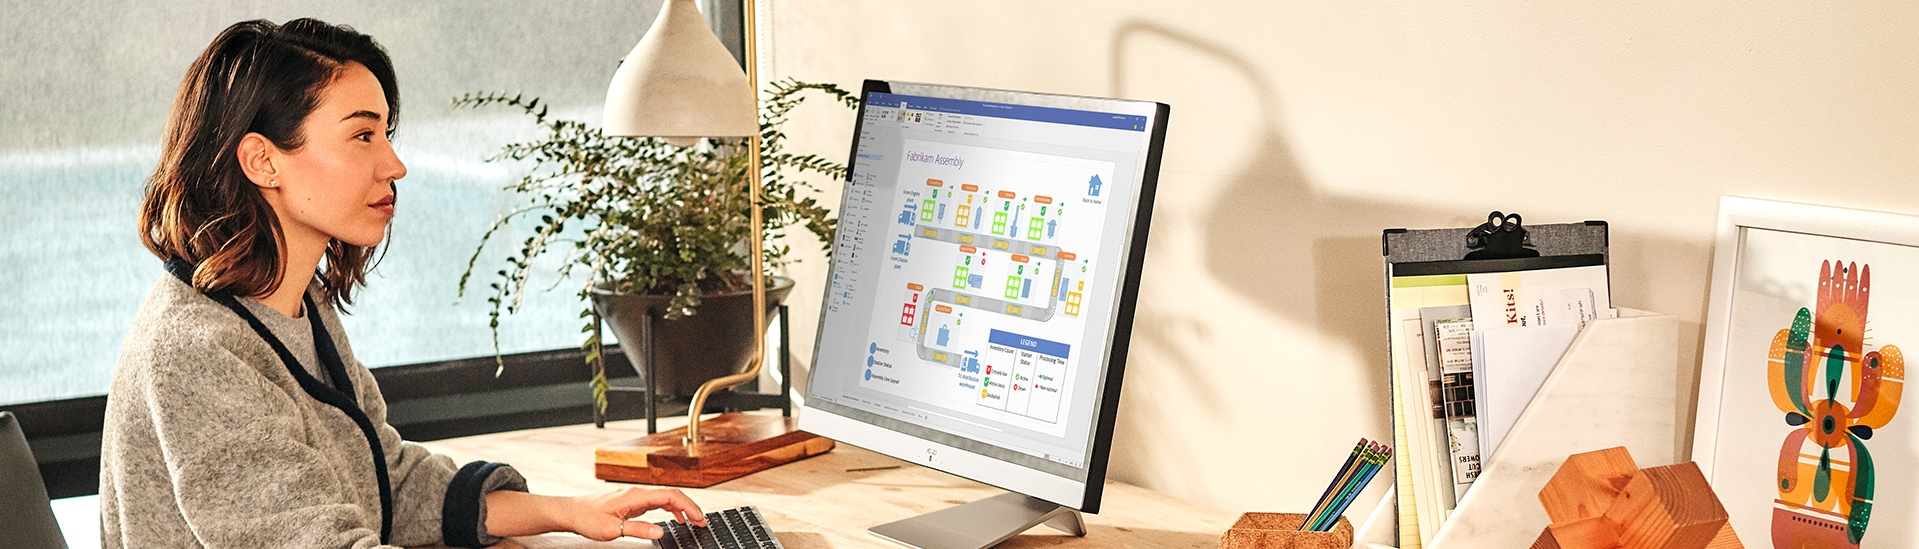 Photograph of a person looking at a file in Visio on a large desktop monitor